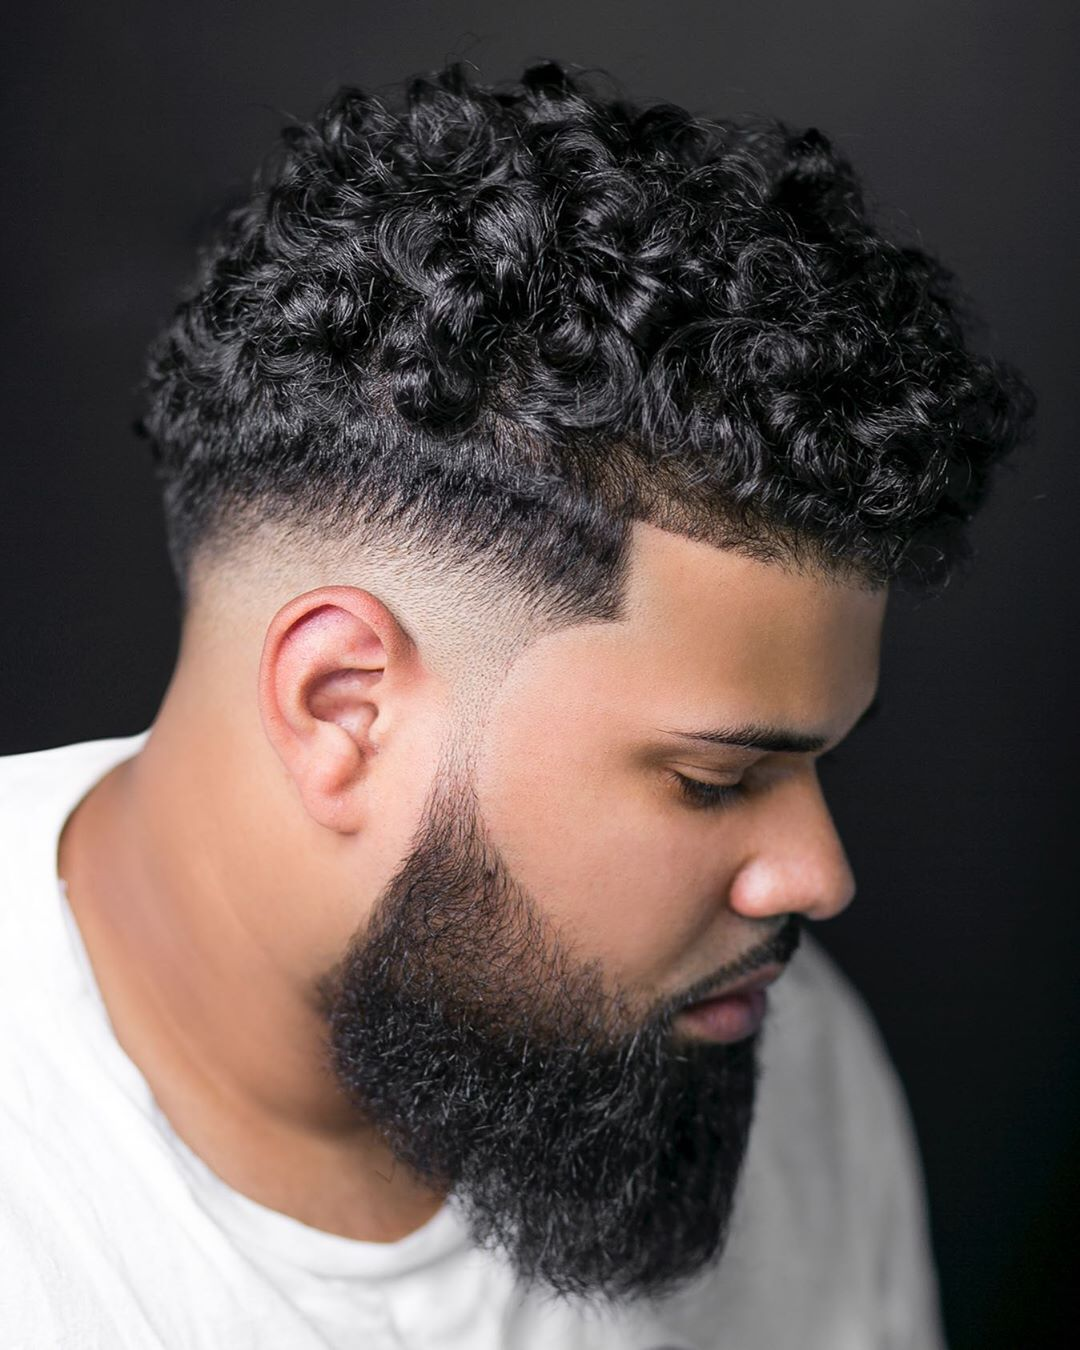 70 Best Curly Hair Haircut Hairstyle Ideas For Men Ultimate Guide In 2020 Curly Hair Men Curly Hair Fade Haircuts For Curly Hair